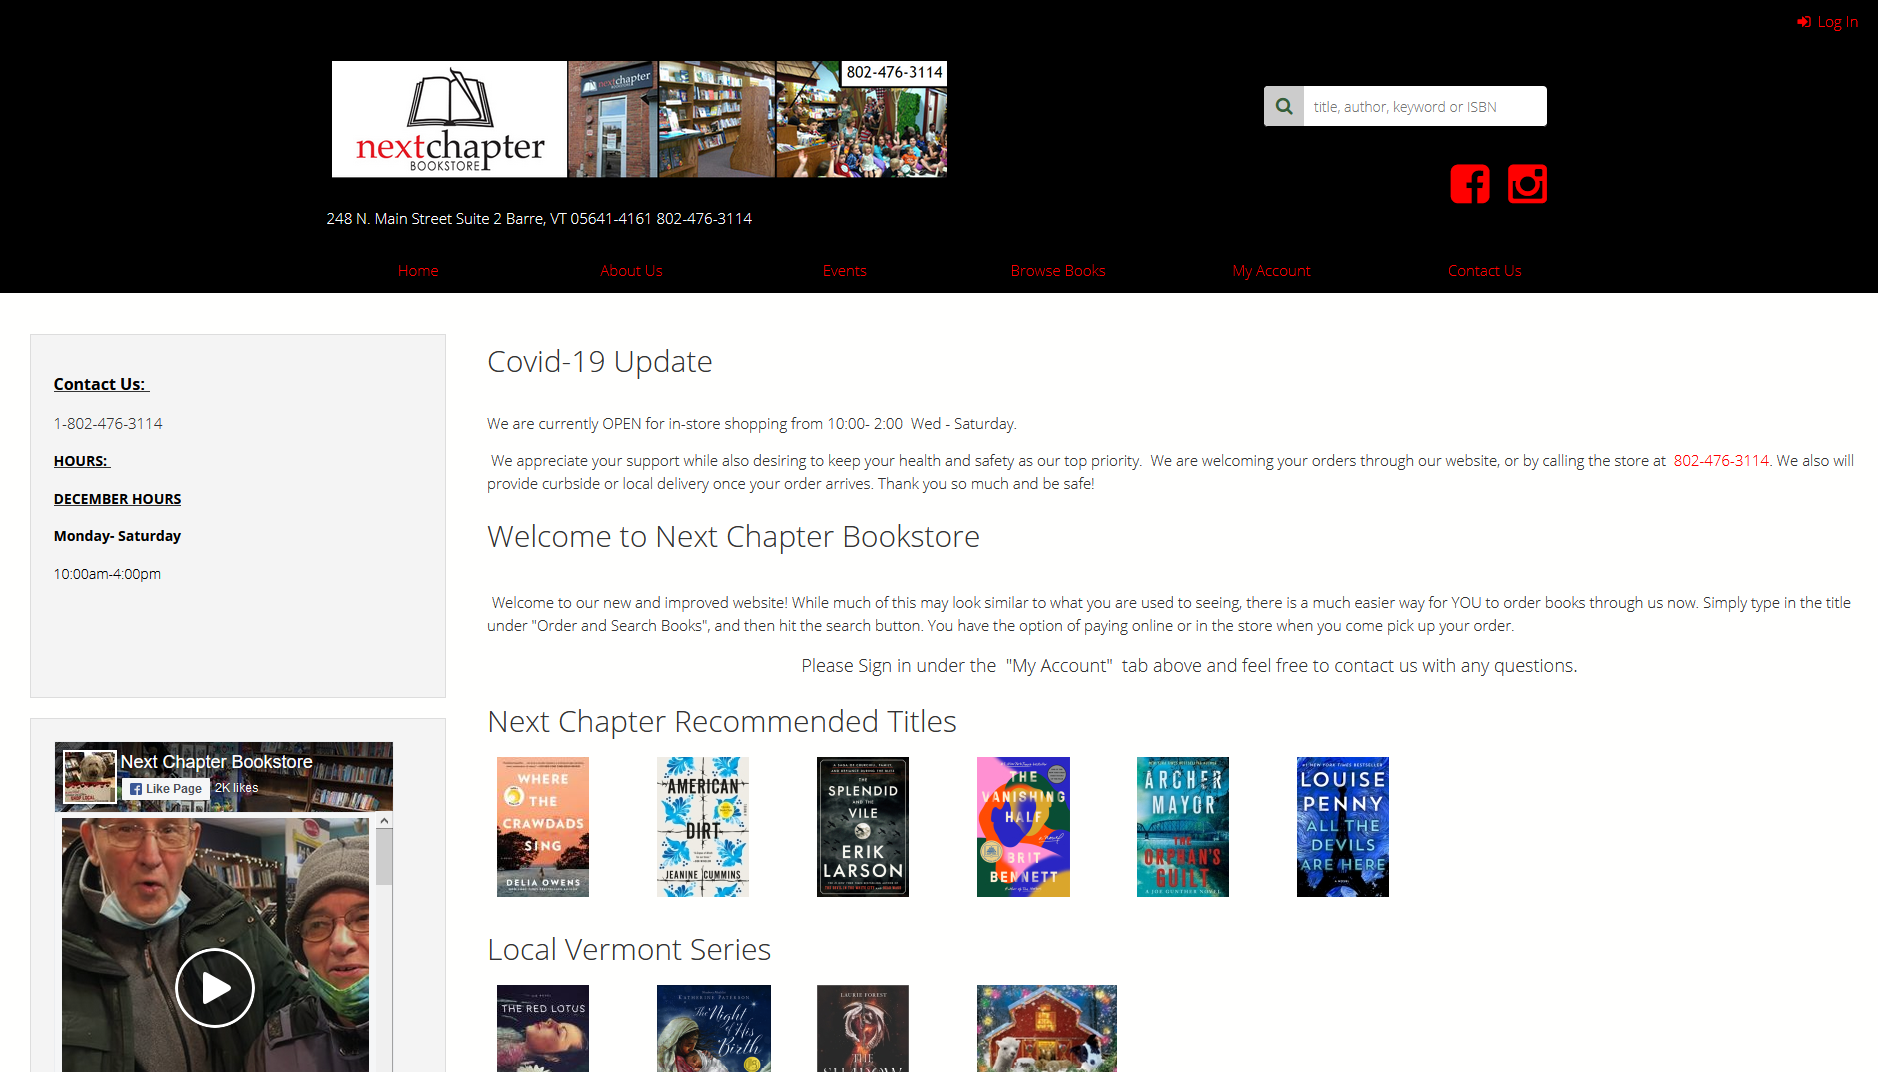 Next Chapter Bookstore IndieLite Home Page